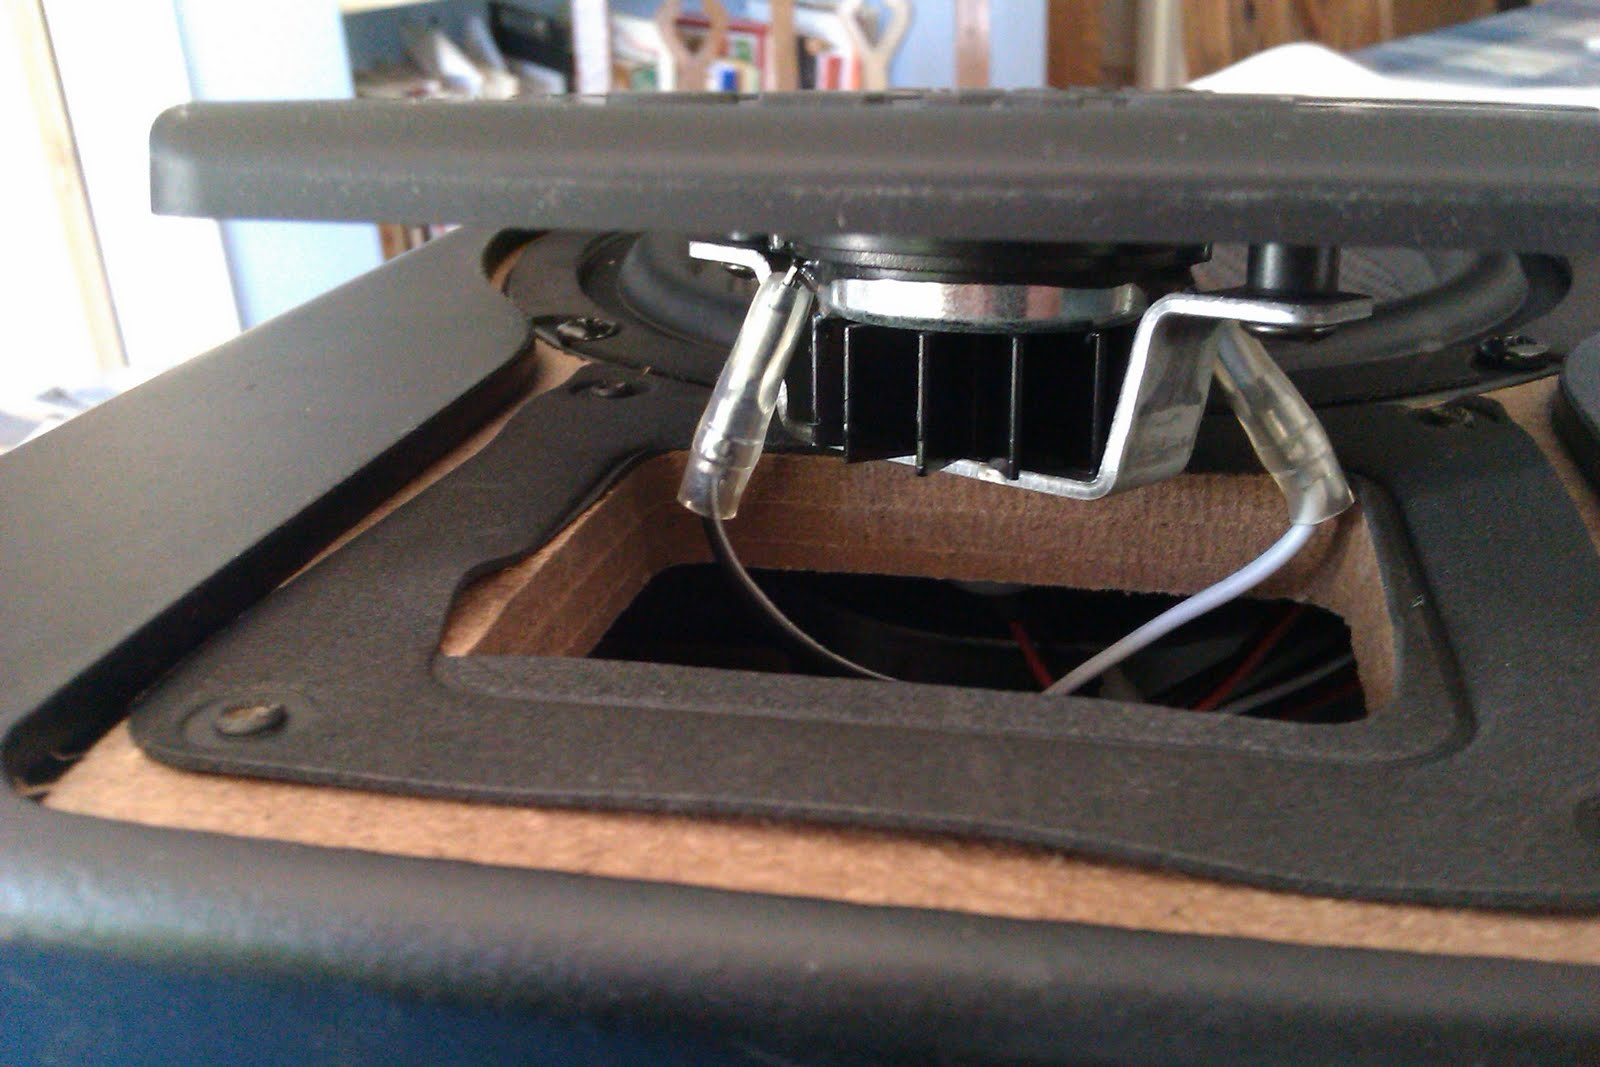 mending things: Mending a pair of M-AUDIO BX5a monitors on